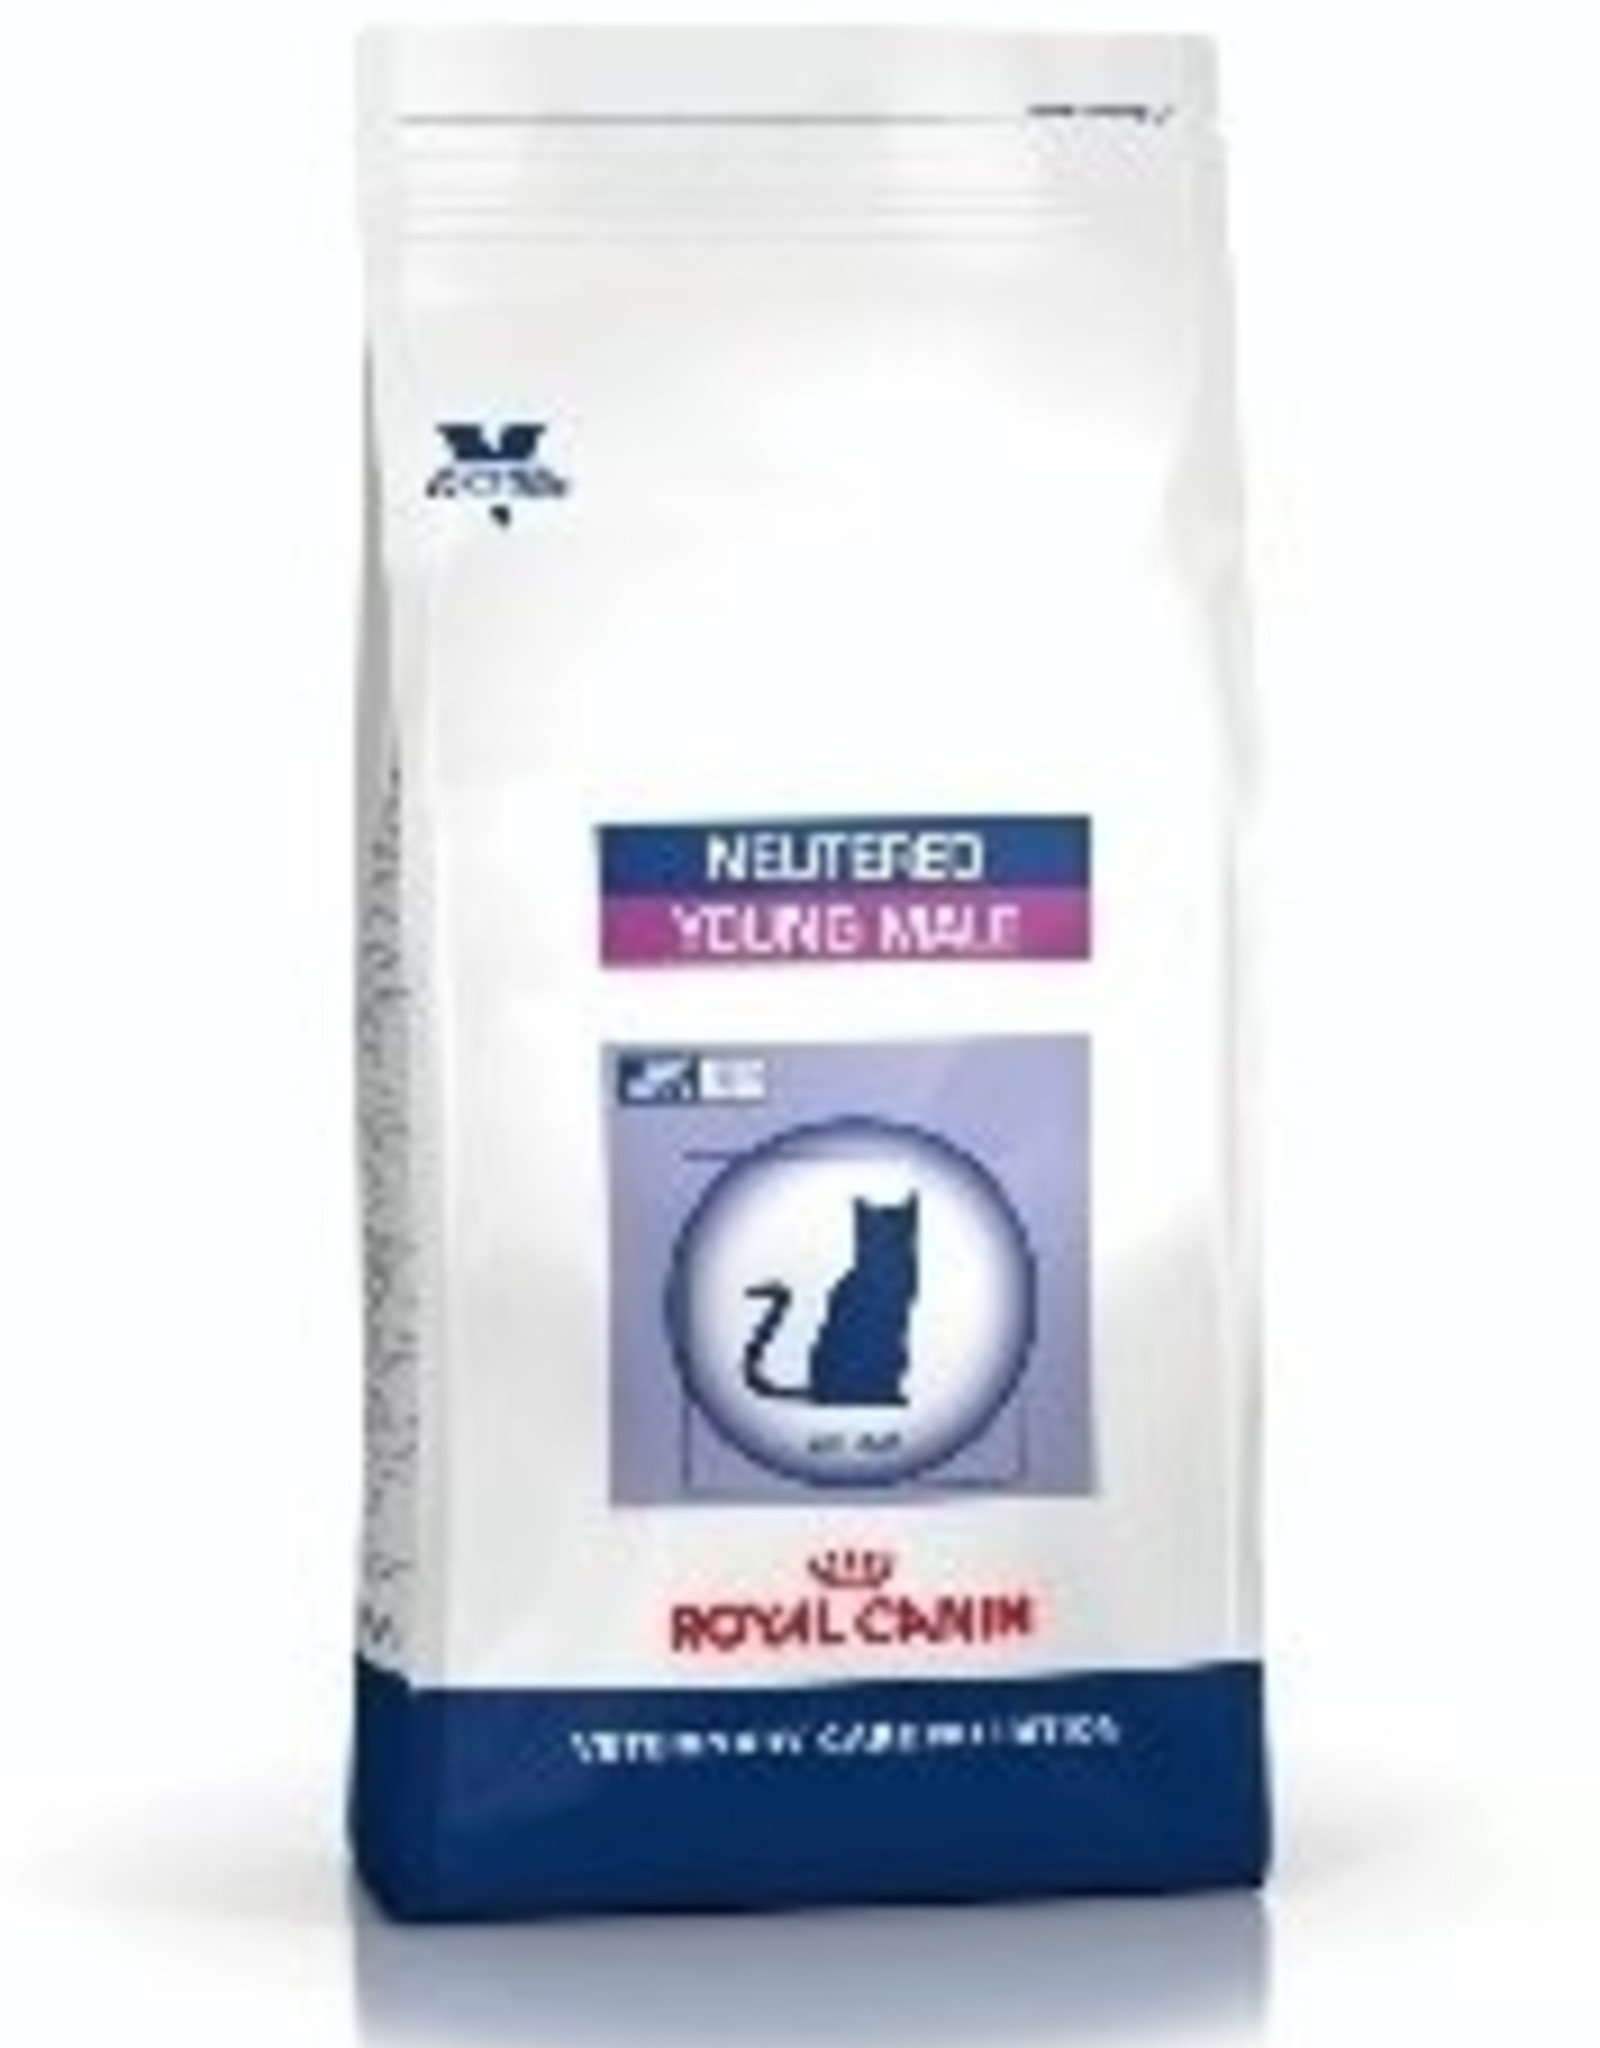 Royal Canin Royal Canin Young Male Kat So 1,5kg